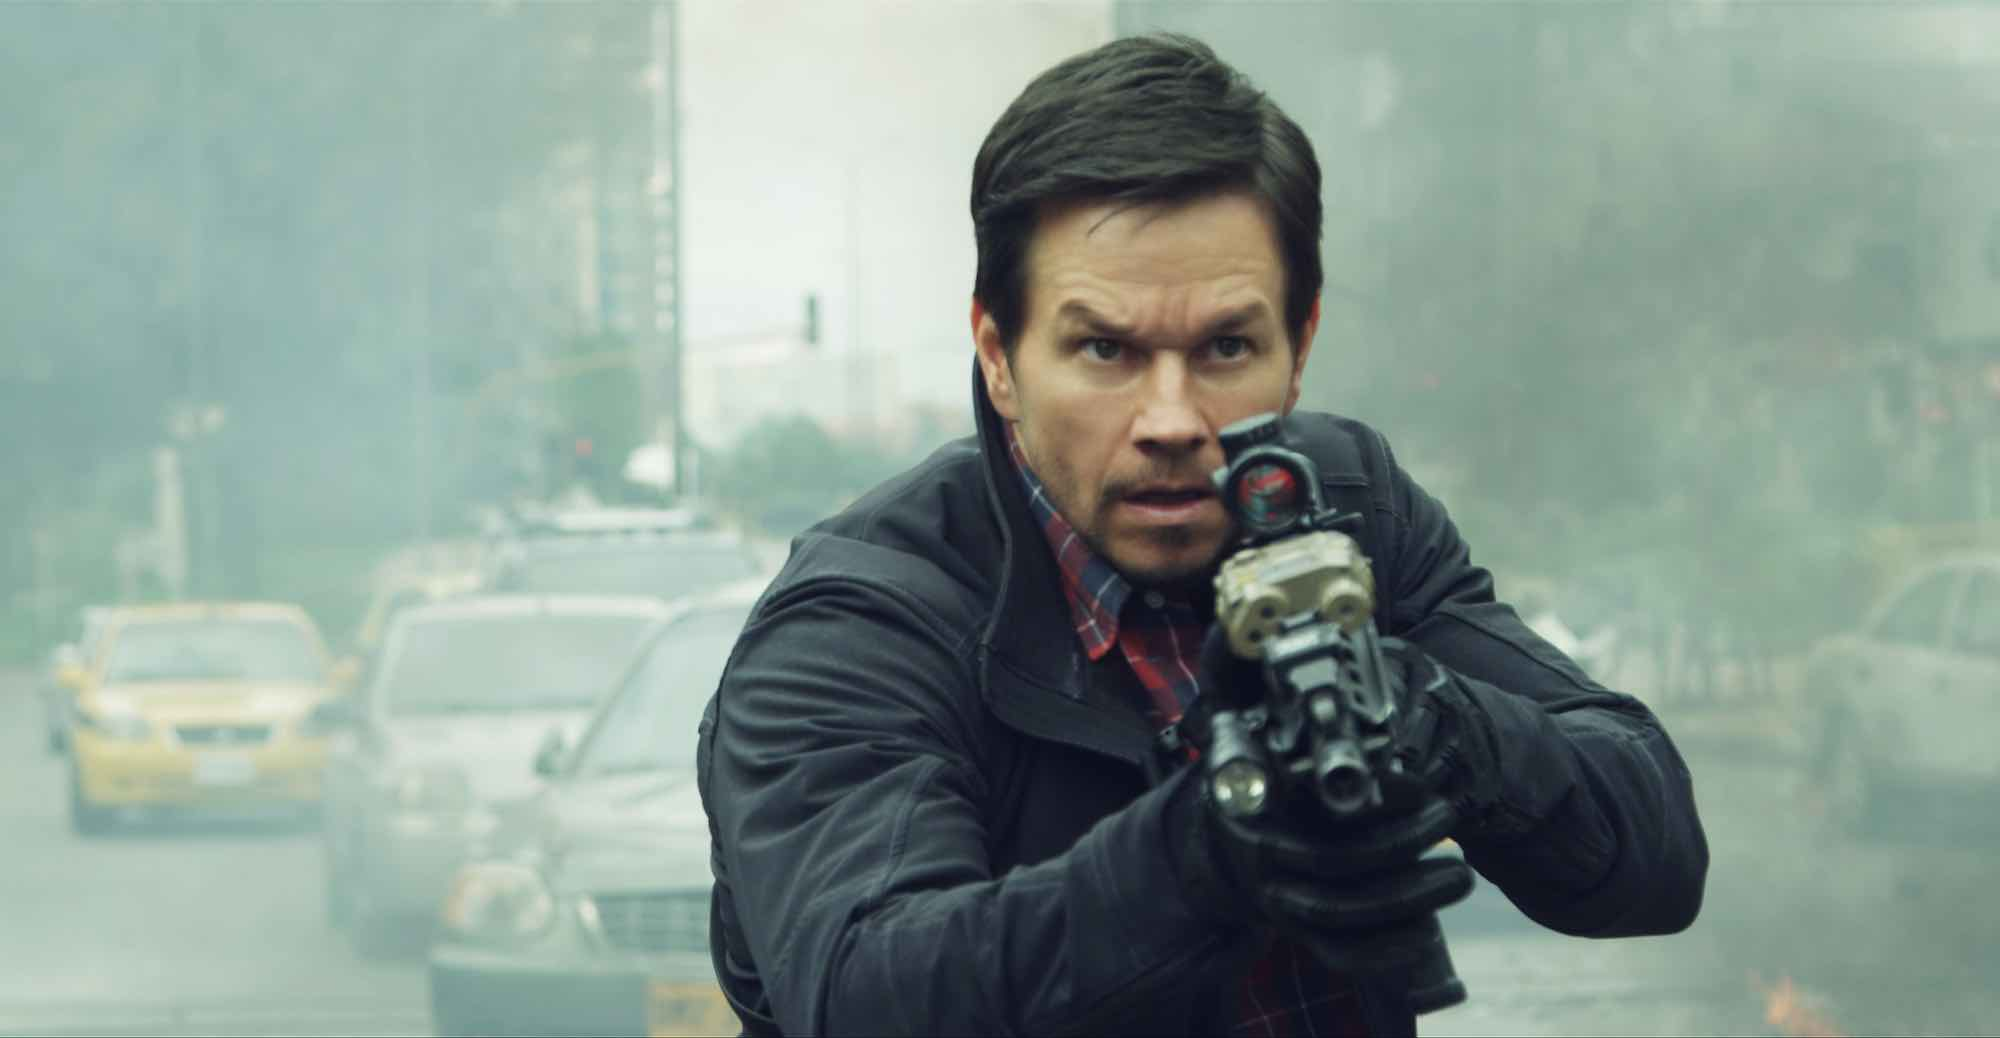 New Red Band Trailer Arrives For Mile 22